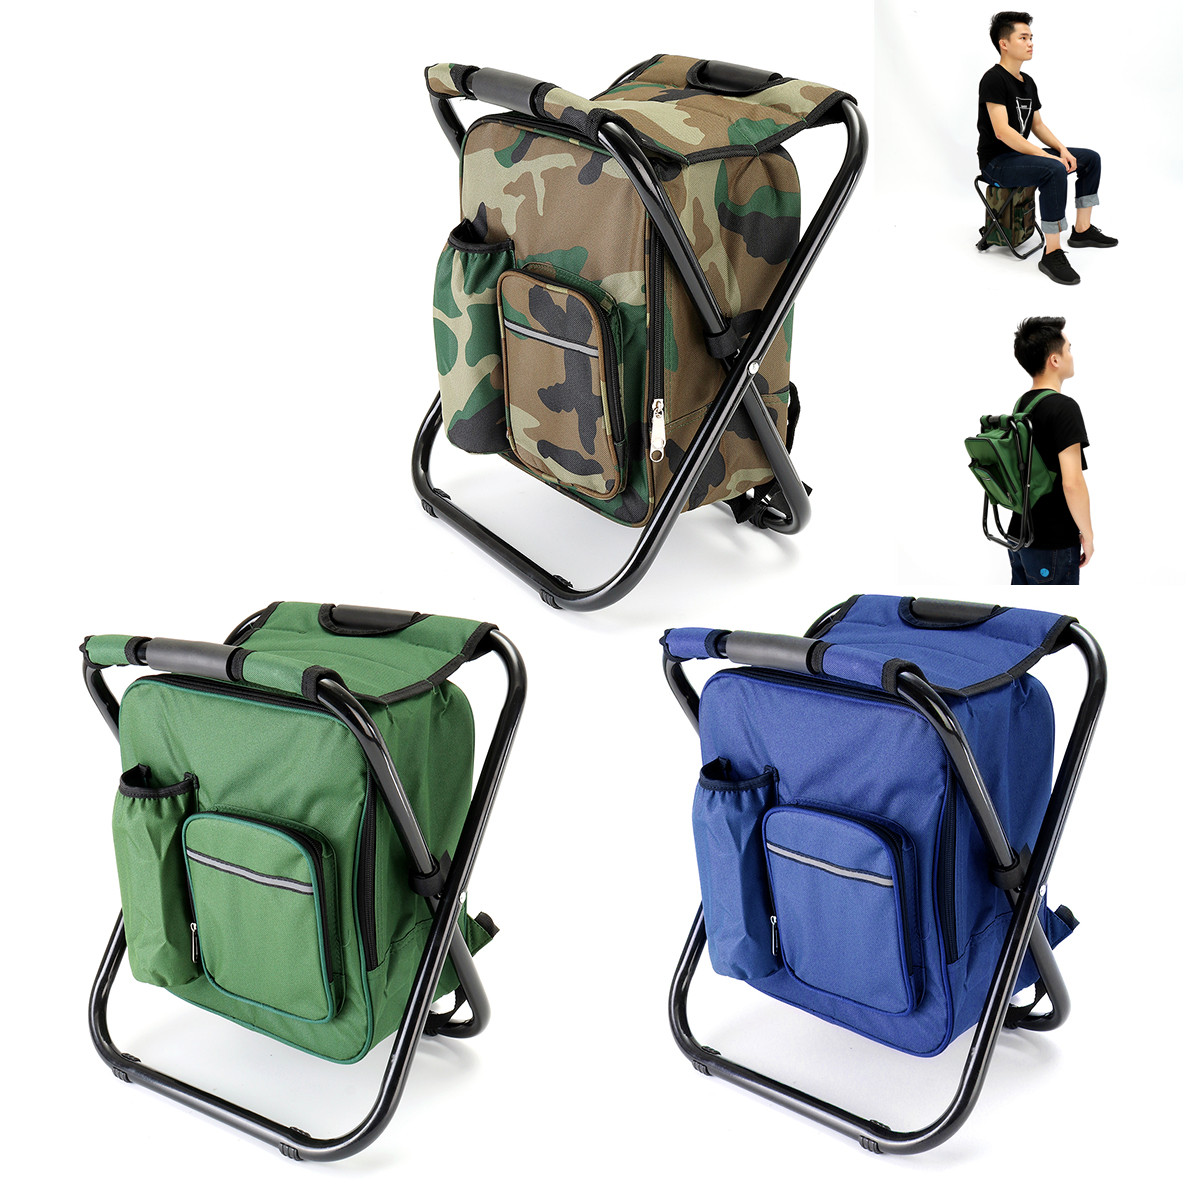 1.8L Portable Outdoor Fishing Chair Backpack Multifunctional Foldable Cooler Bag Chair Fishing Stool Chair For Fishing Camping fishing chair backpack camouflage oxford cloth large capacity fishing bag portable foldable stool fishing tackle tool chair bag